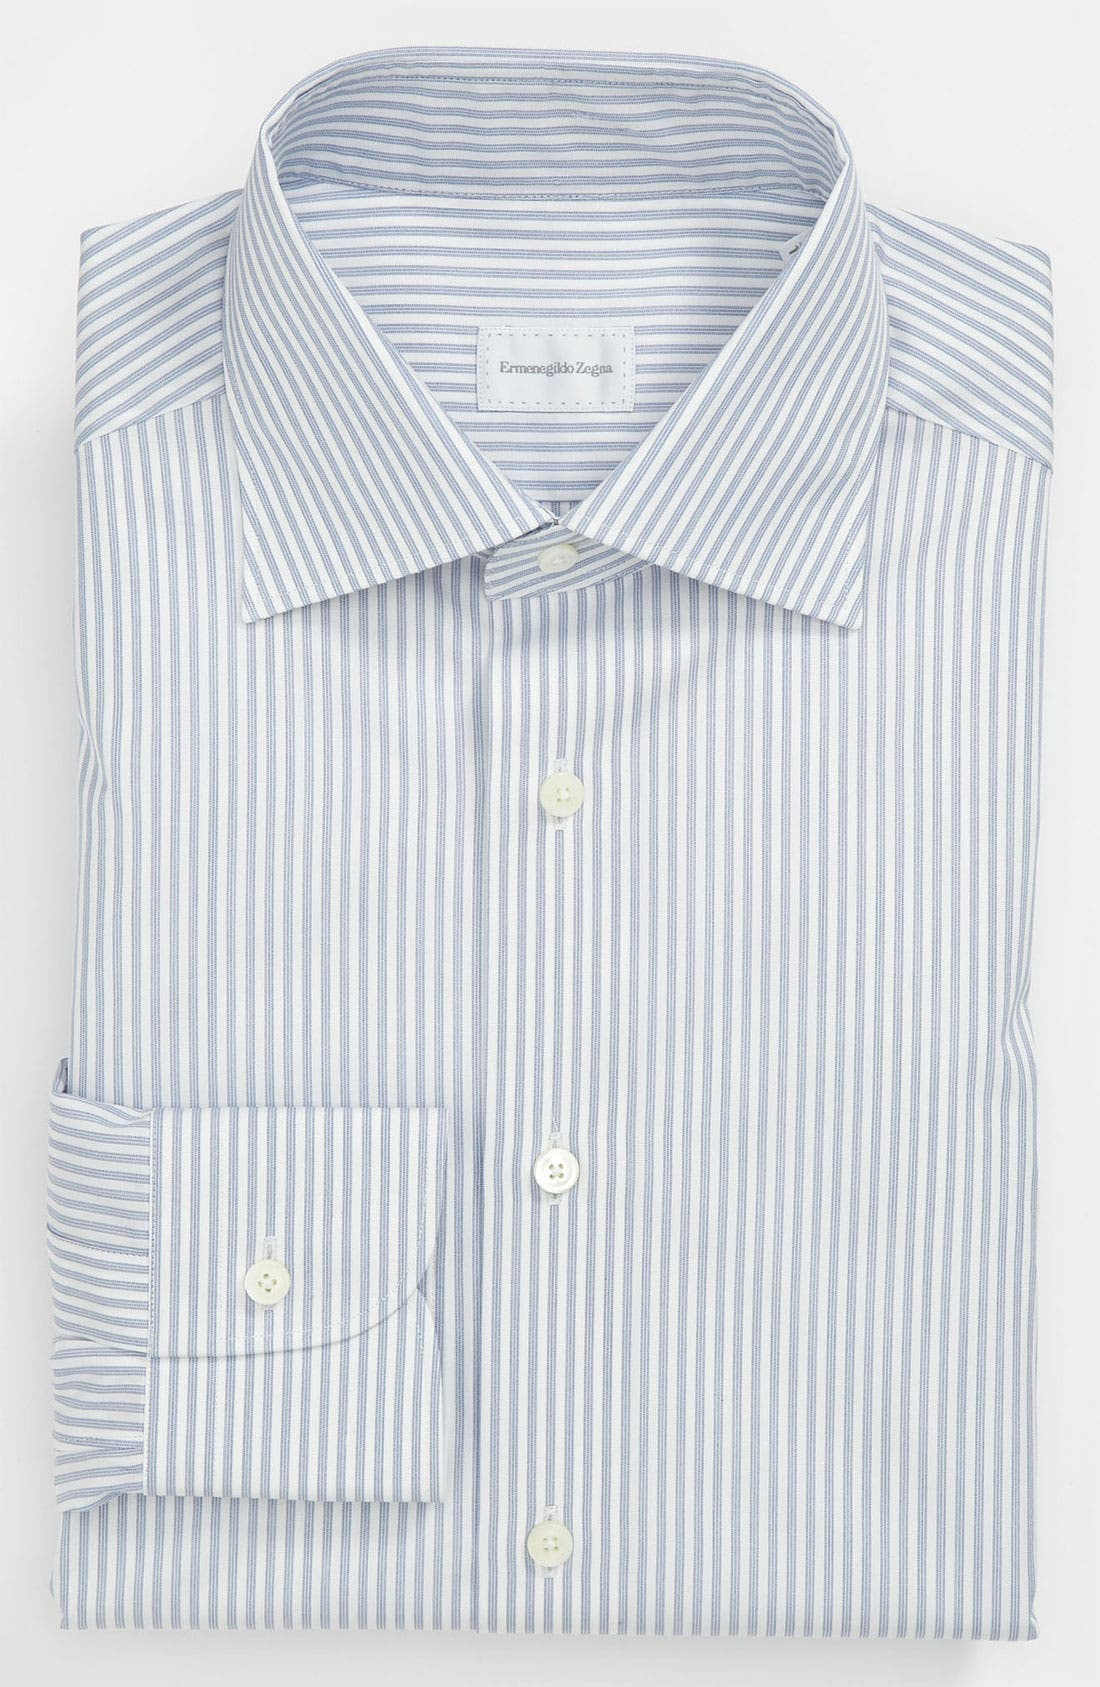 Main Image - Ermenegildo Zegna Regular Fit Dress Shirt